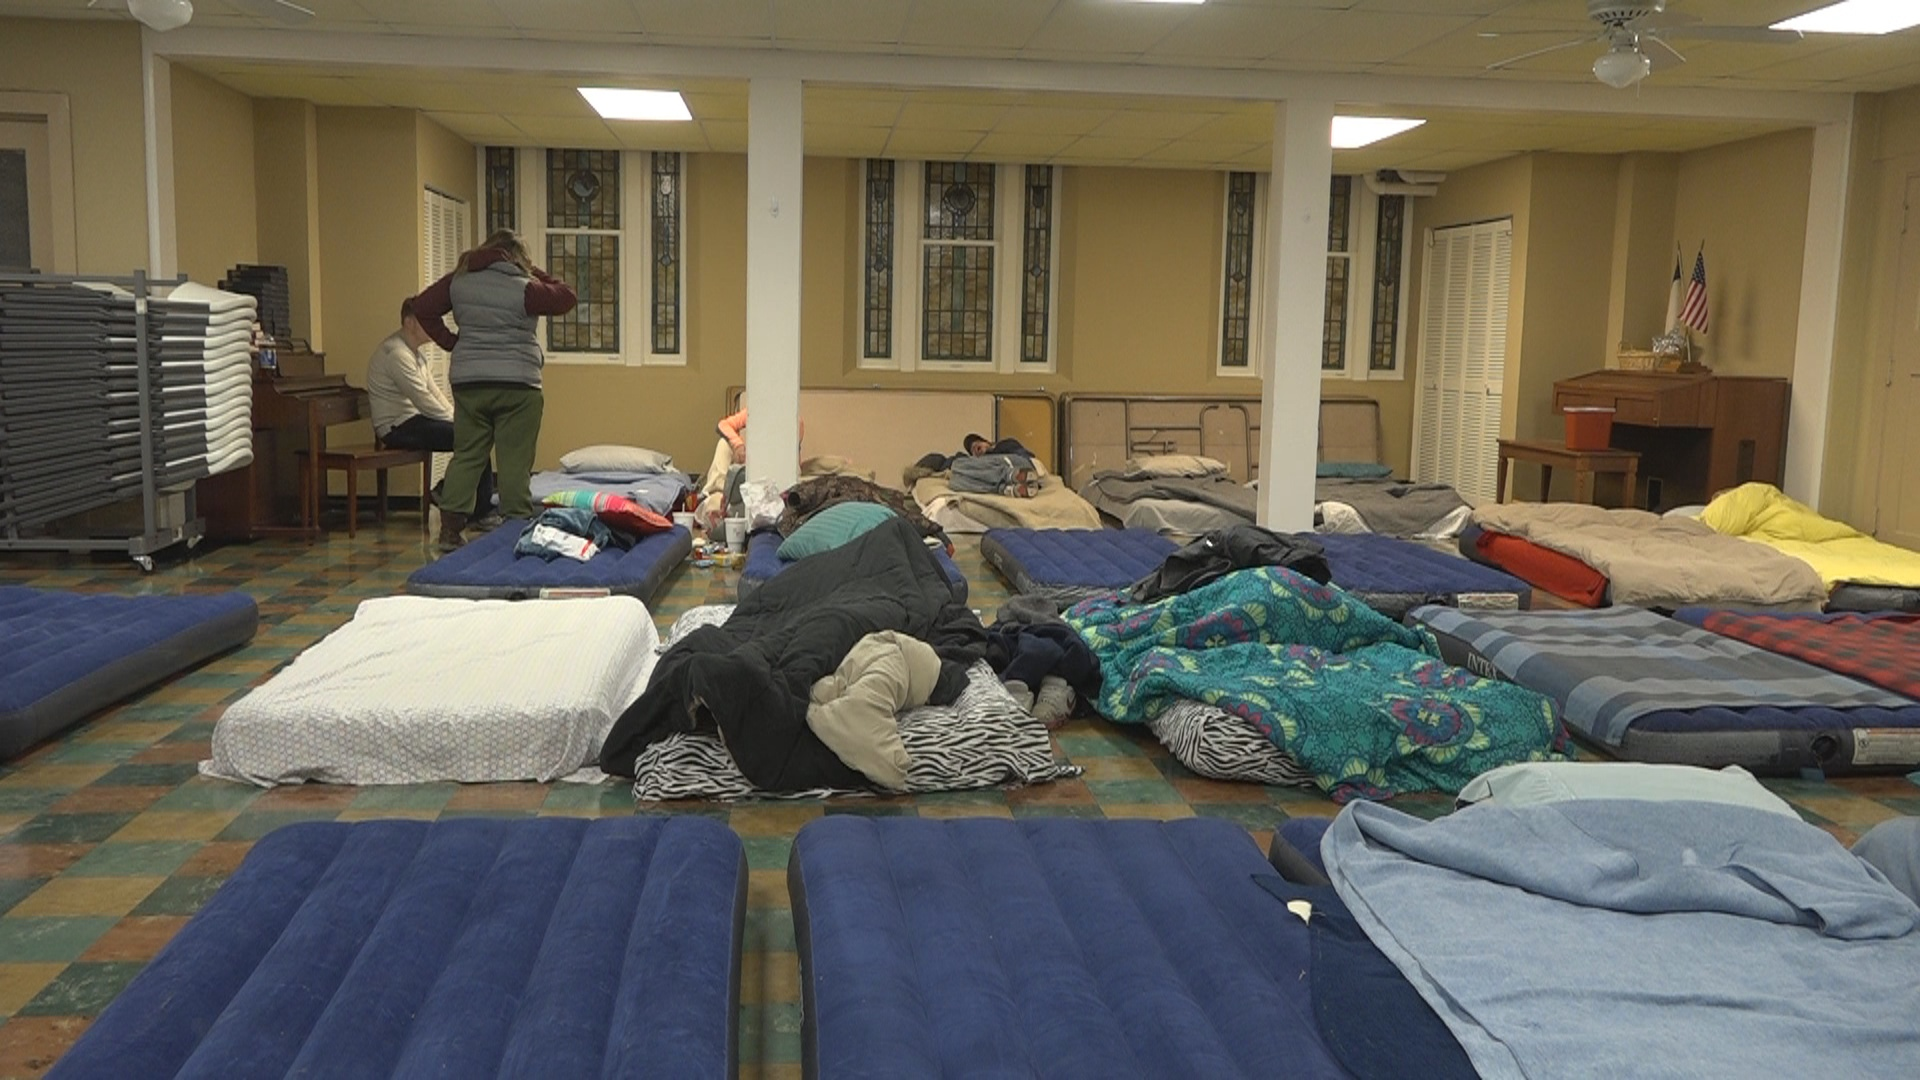 The Change Initiative and Clarkburg Mission provide shelter